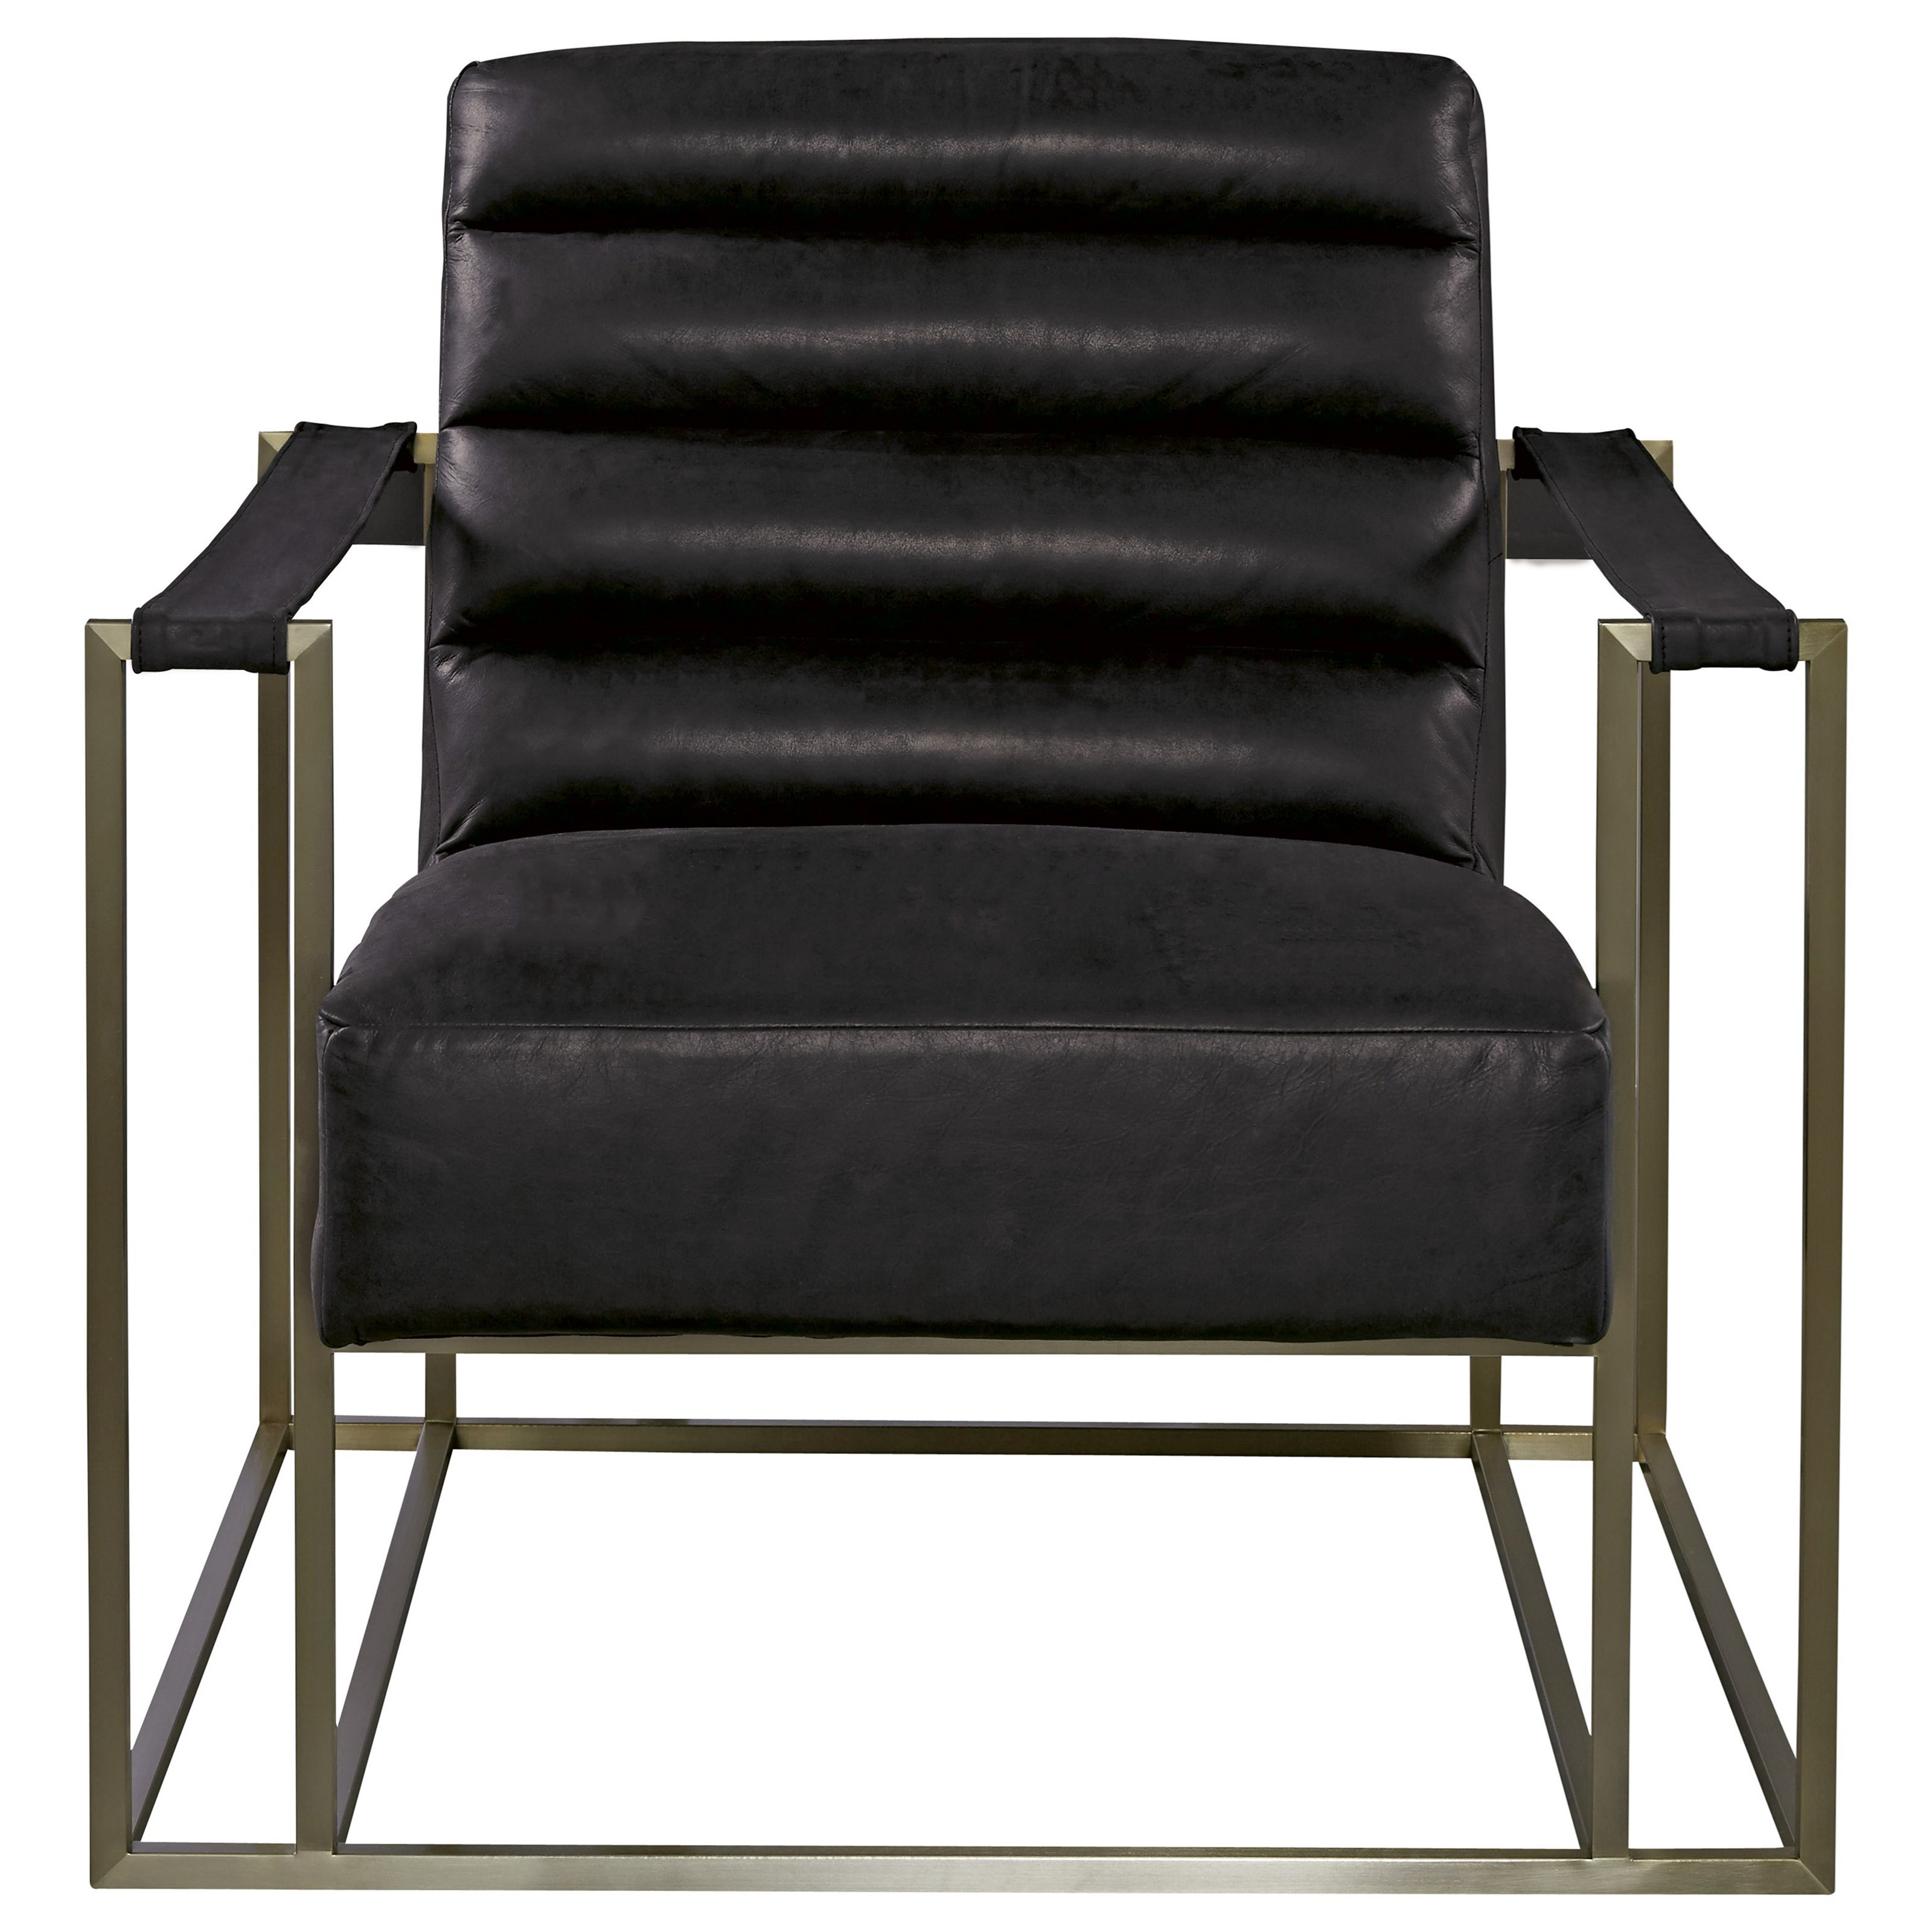 Accents Accent Chair by O'Connor Designs at Sprintz Furniture